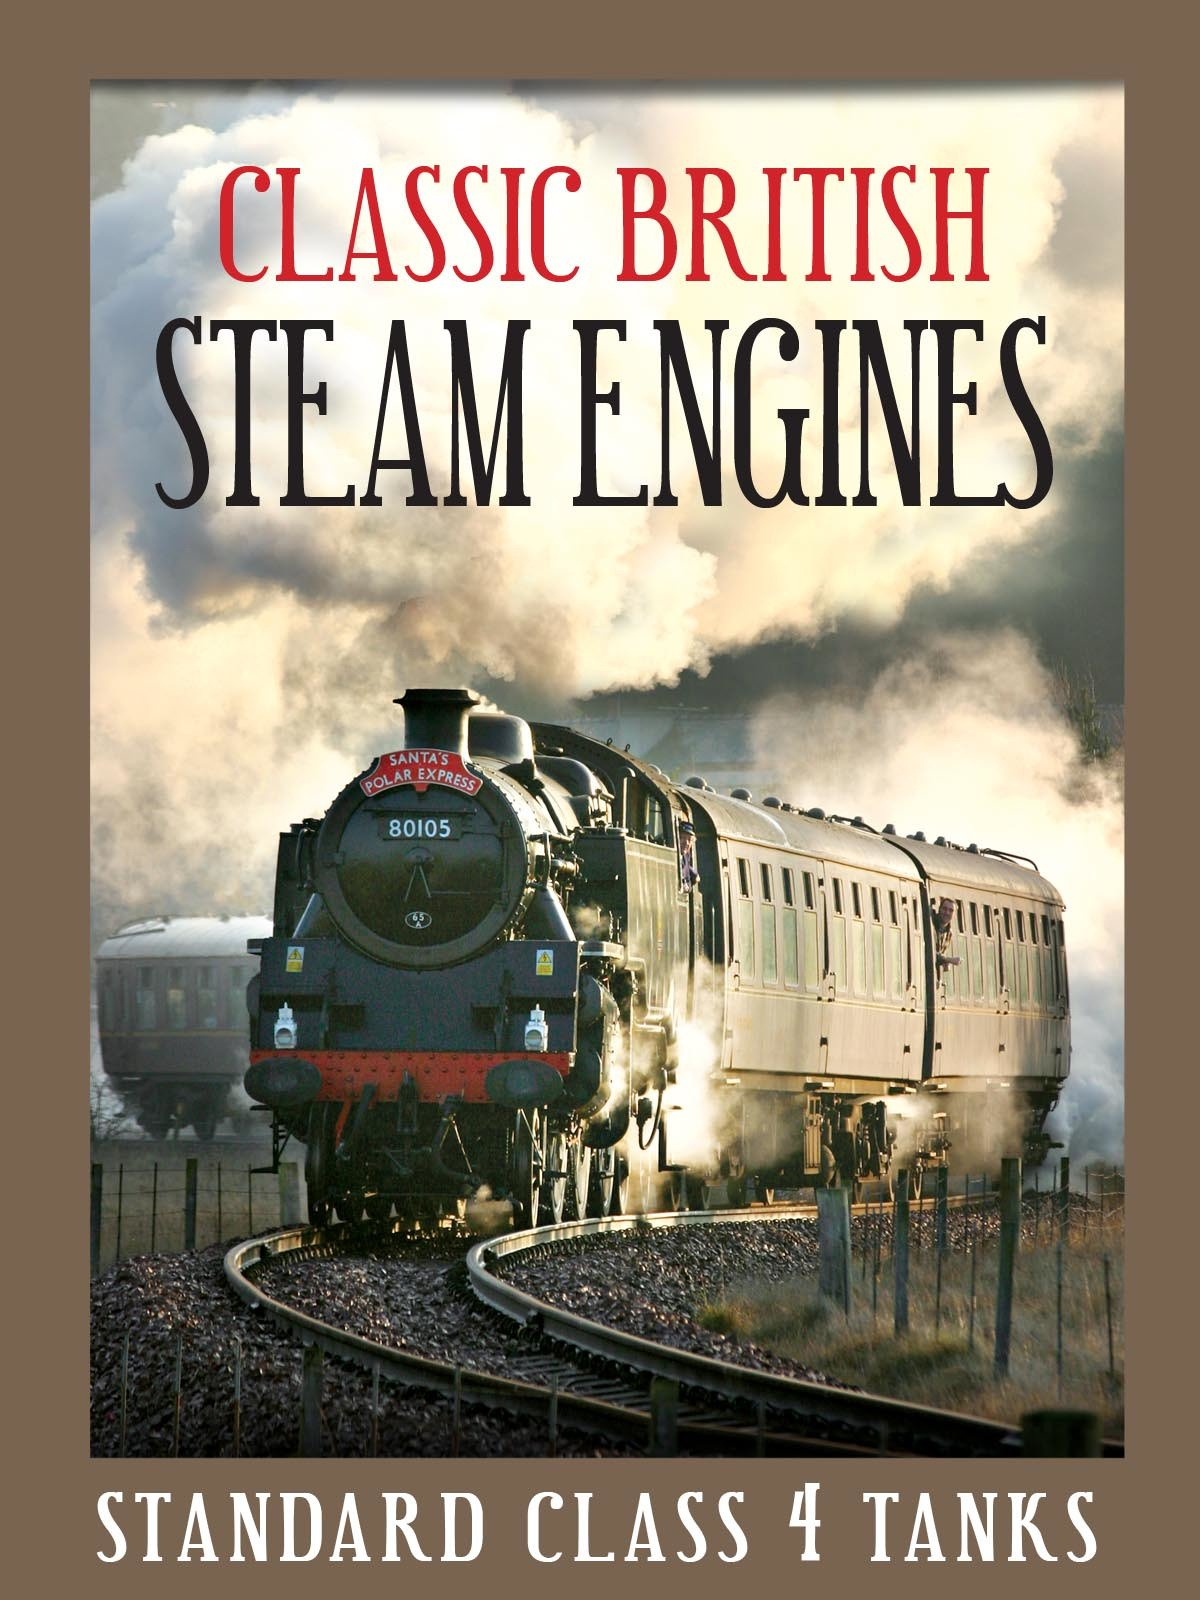 Classic British Steam Engines: Standard Class 4 Tanks